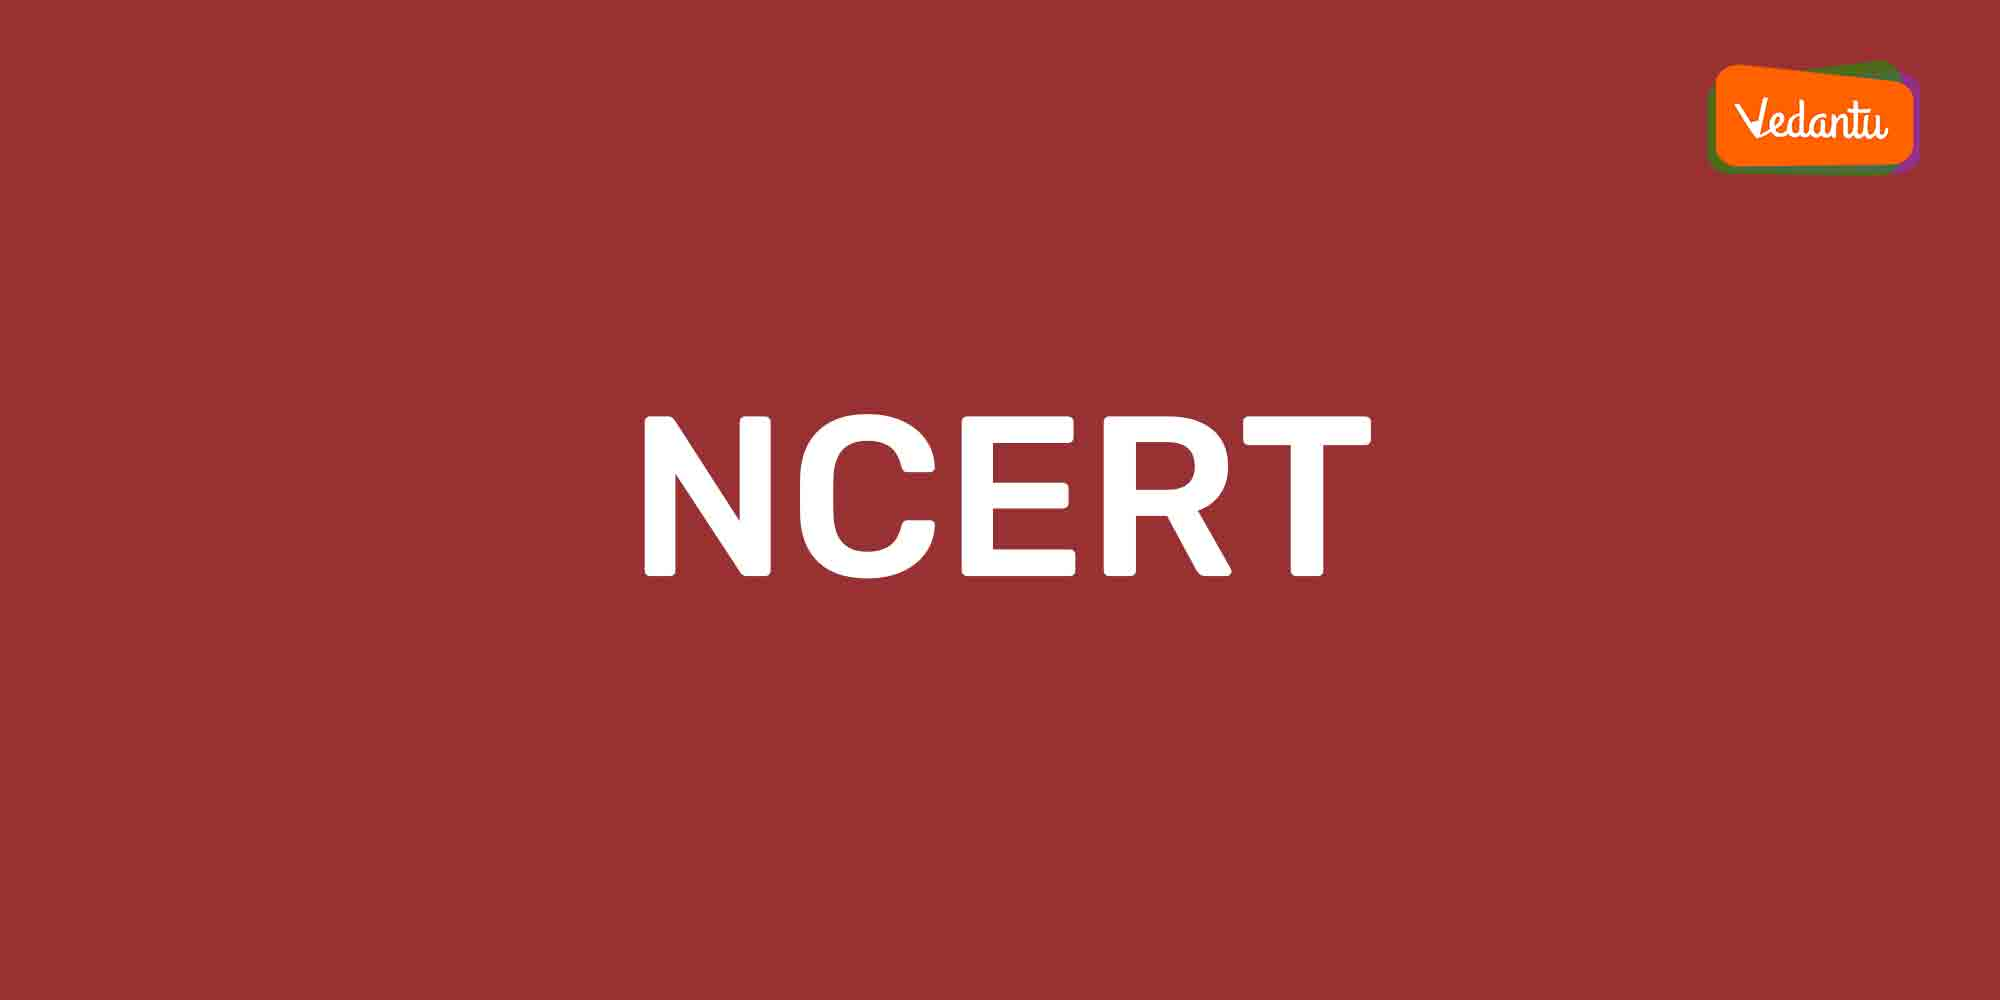 Advantages of NCERT Solutions in IIT JEE and NEET Exams